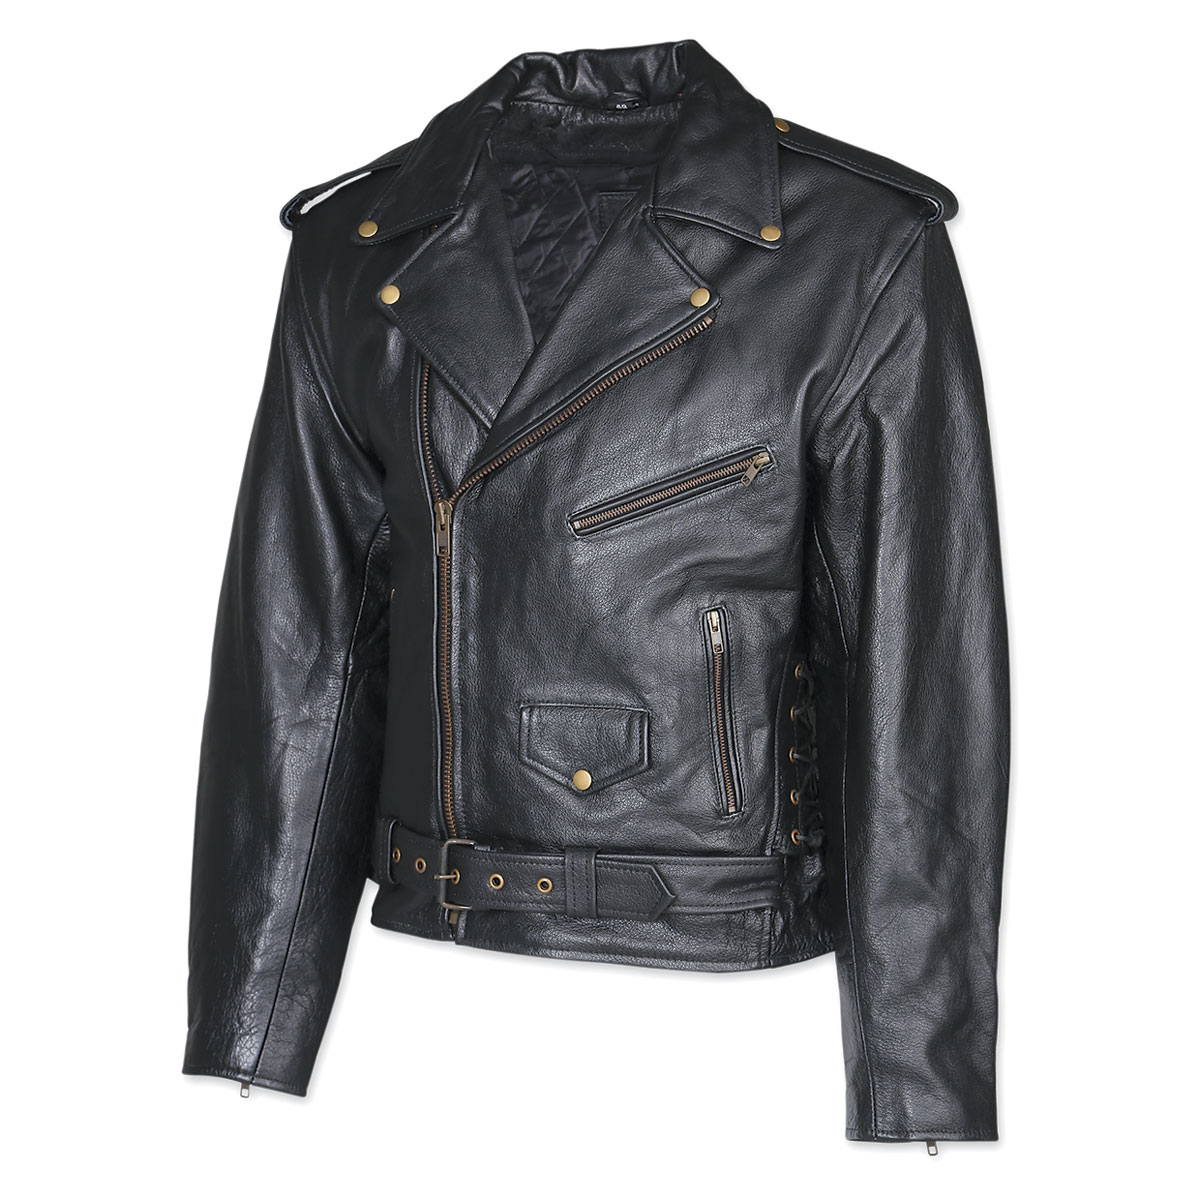 Allstate Leather Inc. Men's Leather Motorcycle Jacket